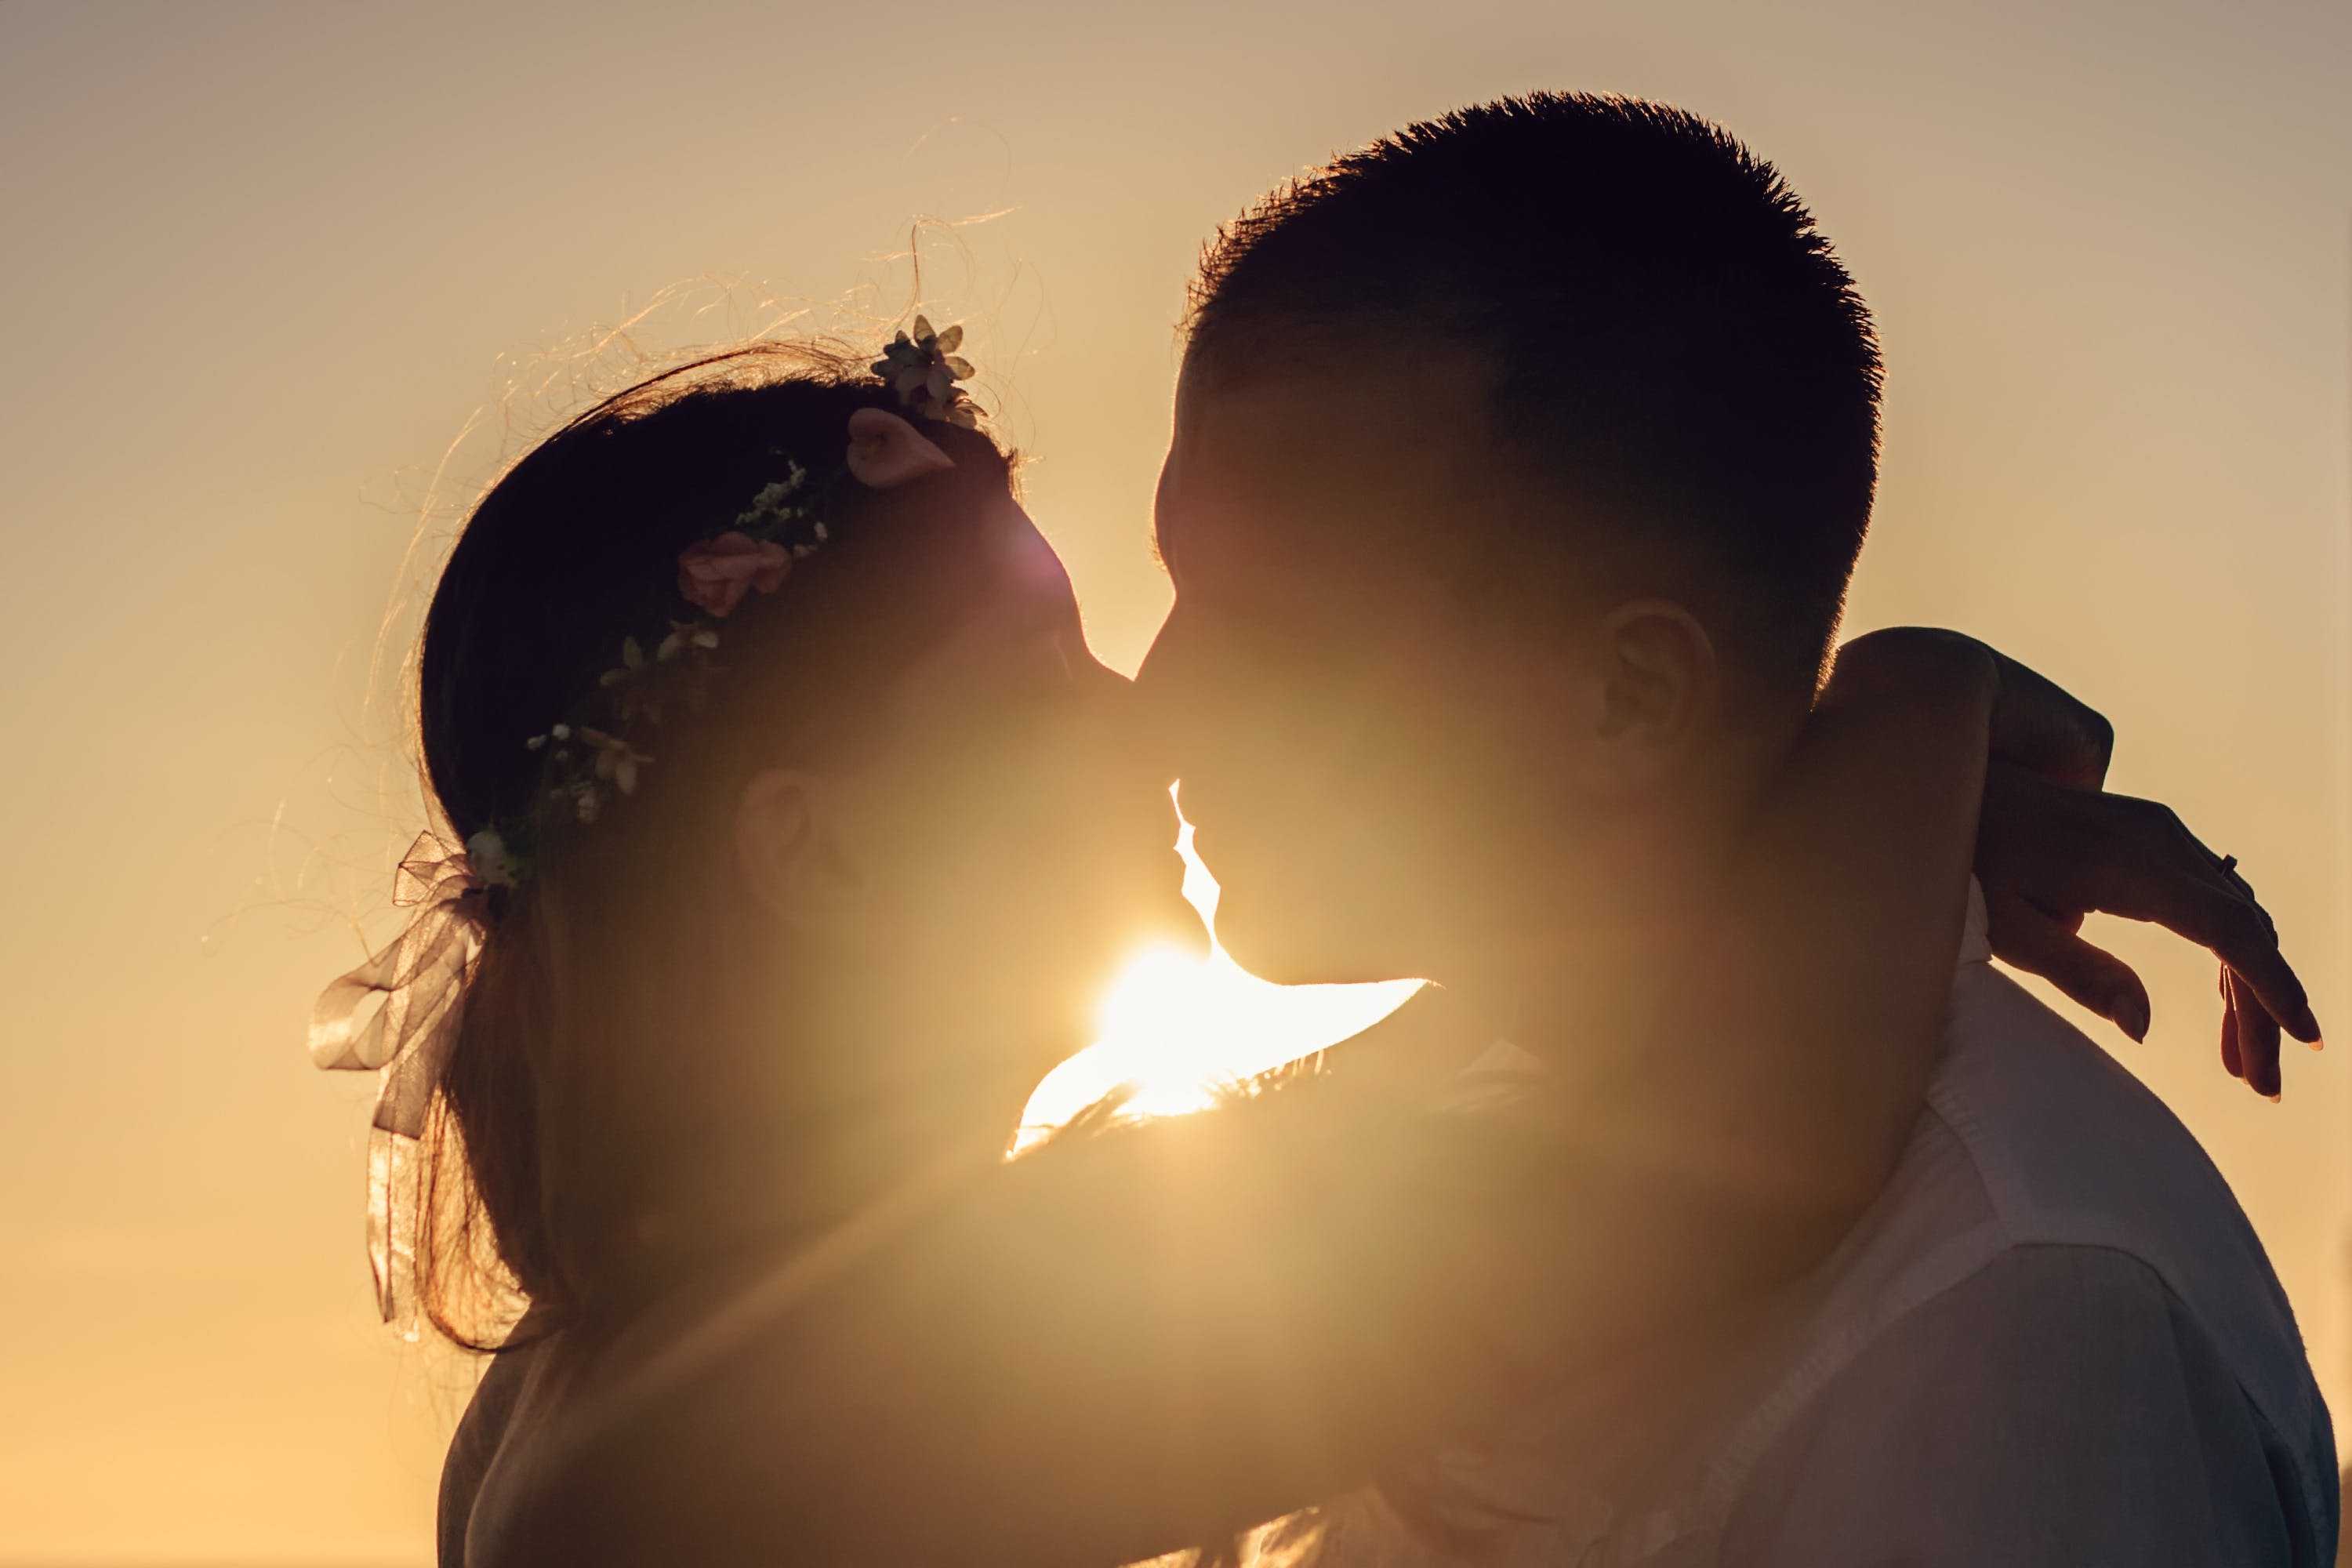 Free stock photo of love, summer, silhouette, kiss